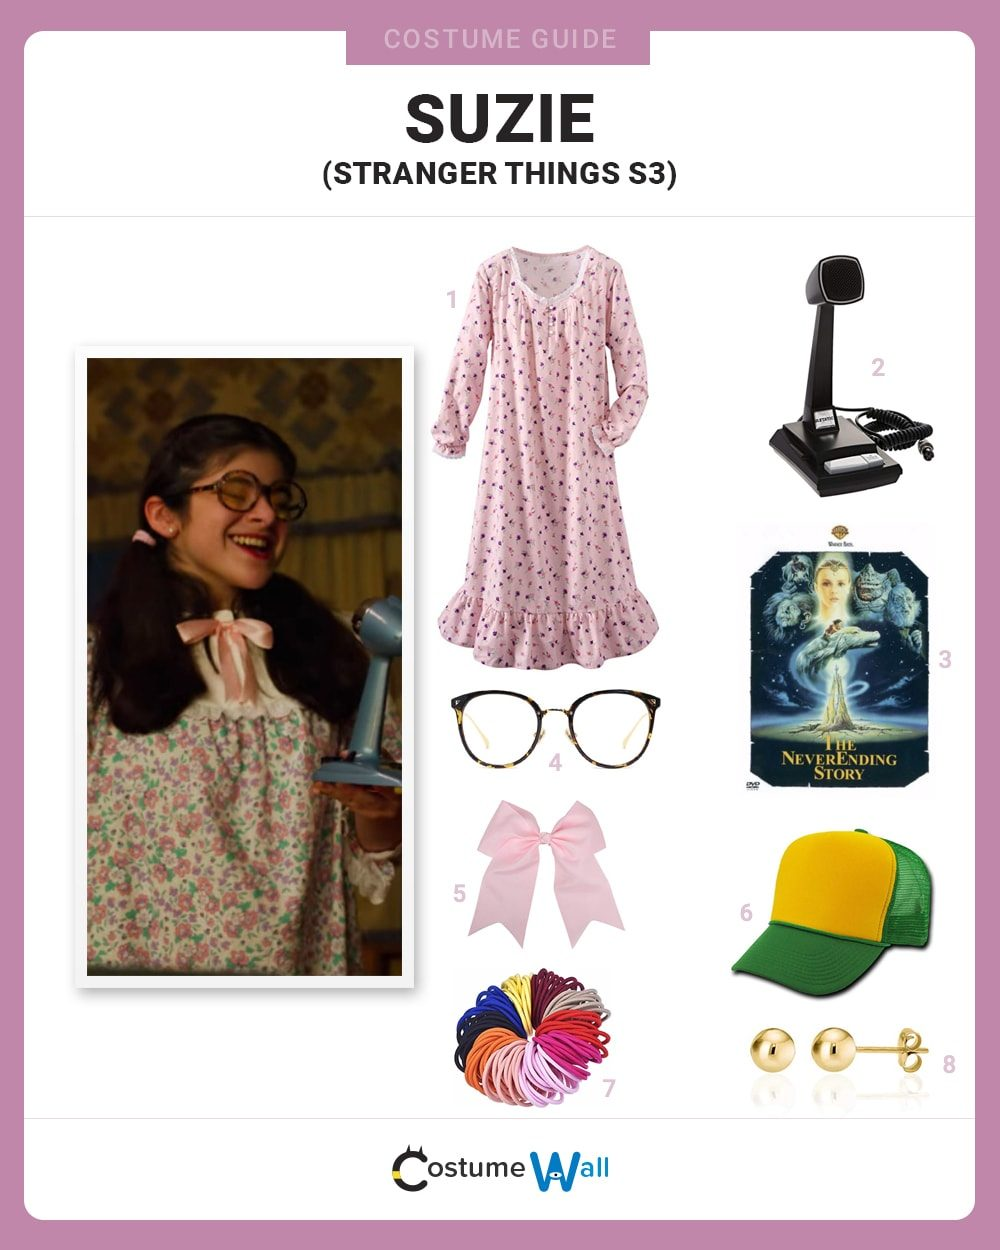 Suzie - Stranger Things Costume Guide